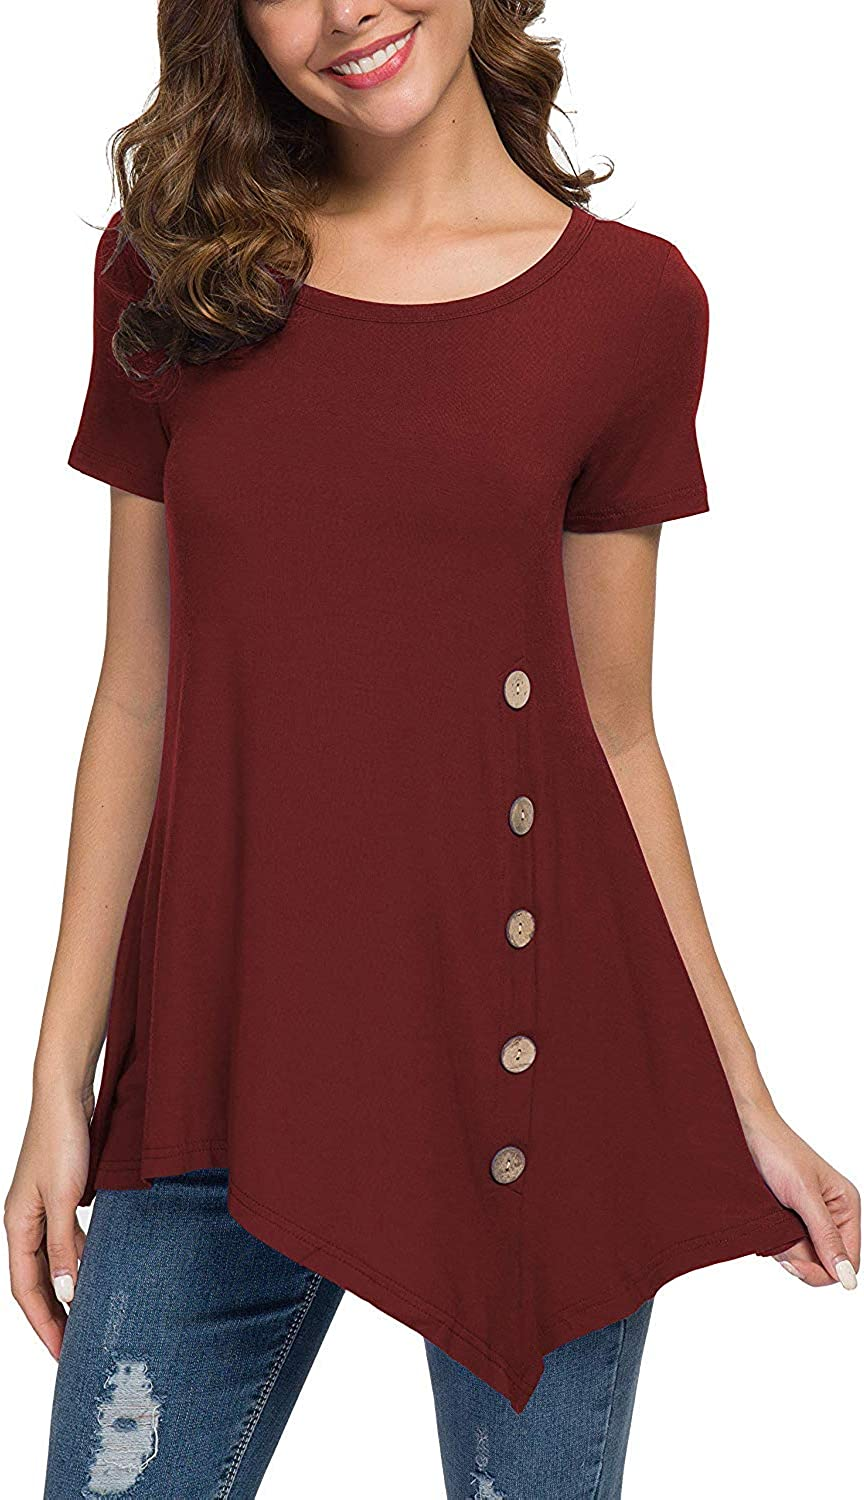 WEACZZY Women's Summer Short Sleeve Scoop Neck Button Side Tunic Top (Wine red, XLarge)